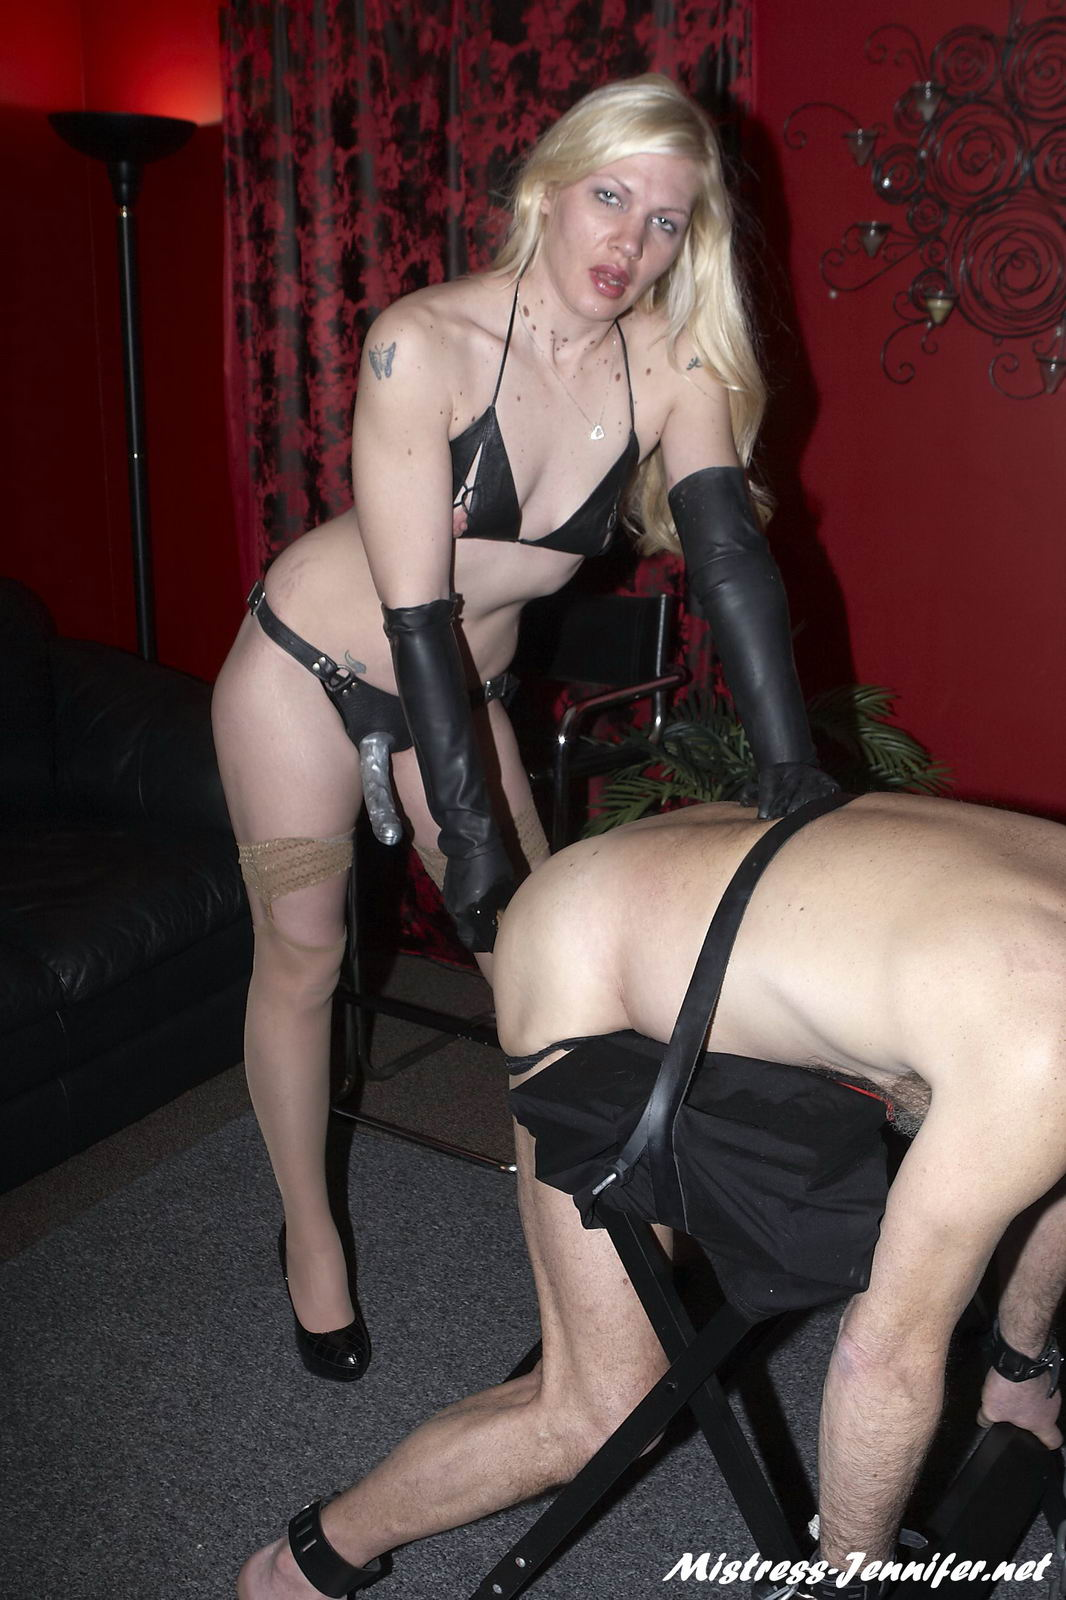 Dominatrix Ariel firm session